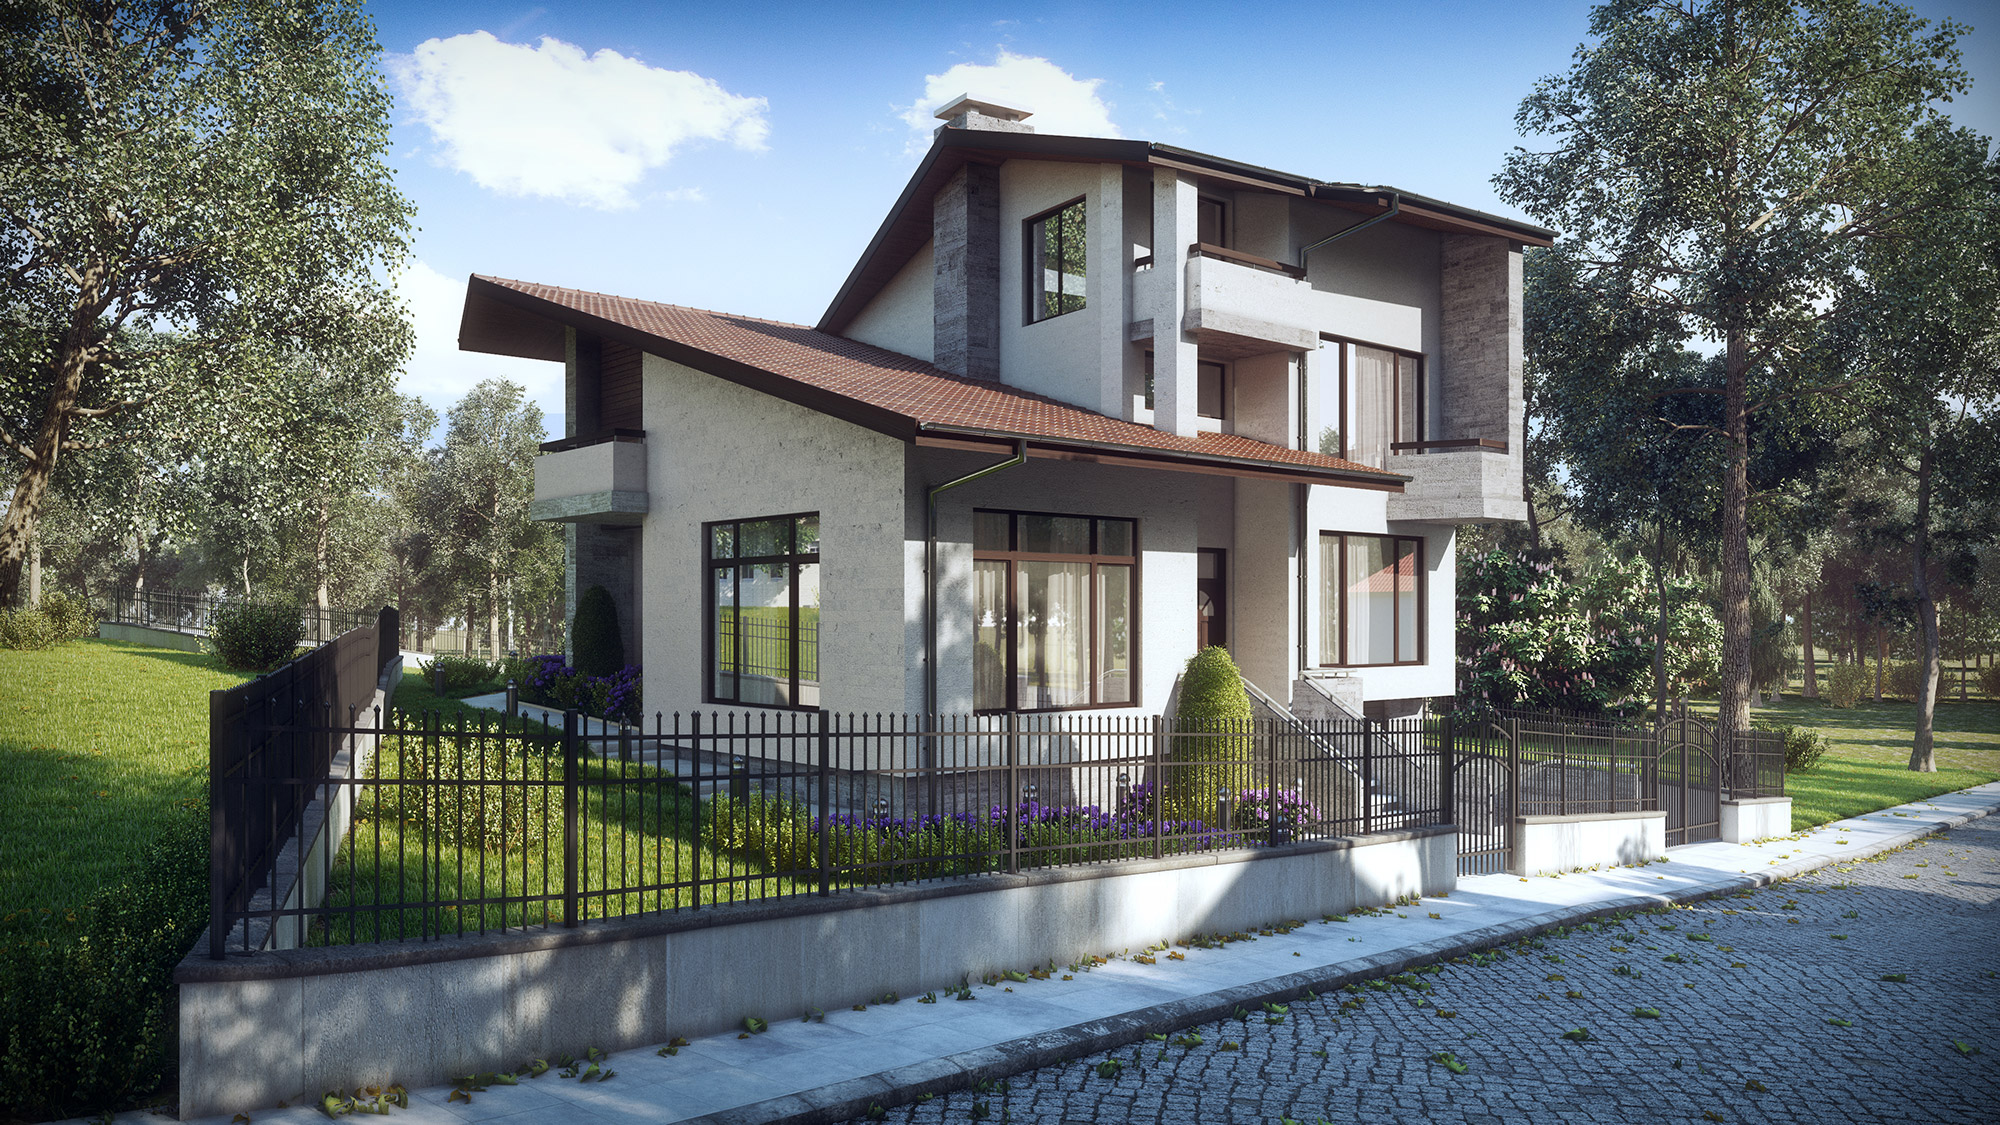 Single Family House Vitosha Sofia Kunchevarchdesign